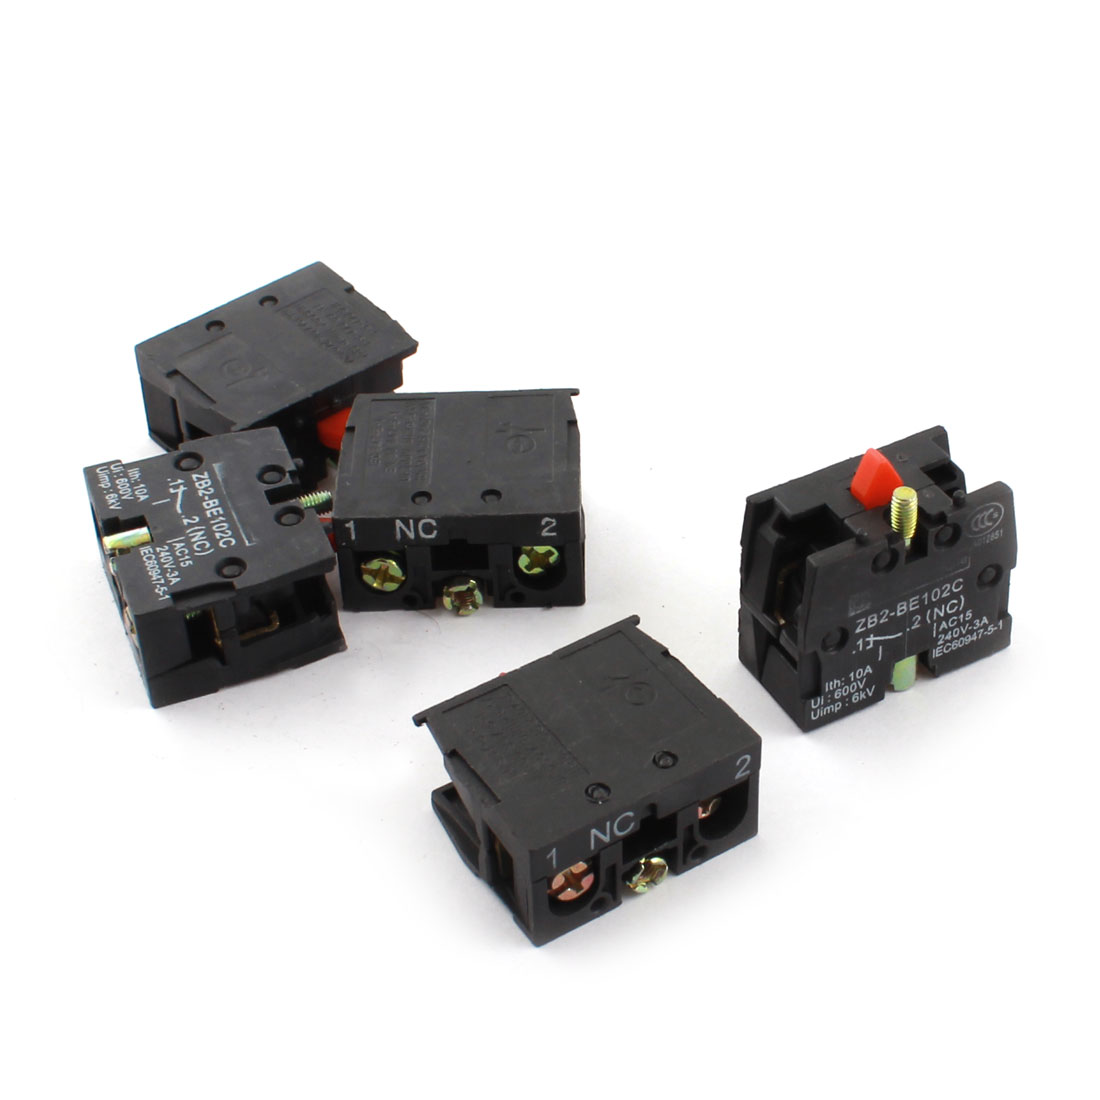 5Pcs AC600V 10A NC Normal Close Momentary Snap in Mount Pushbutton Switch Auxiliary Contact Block